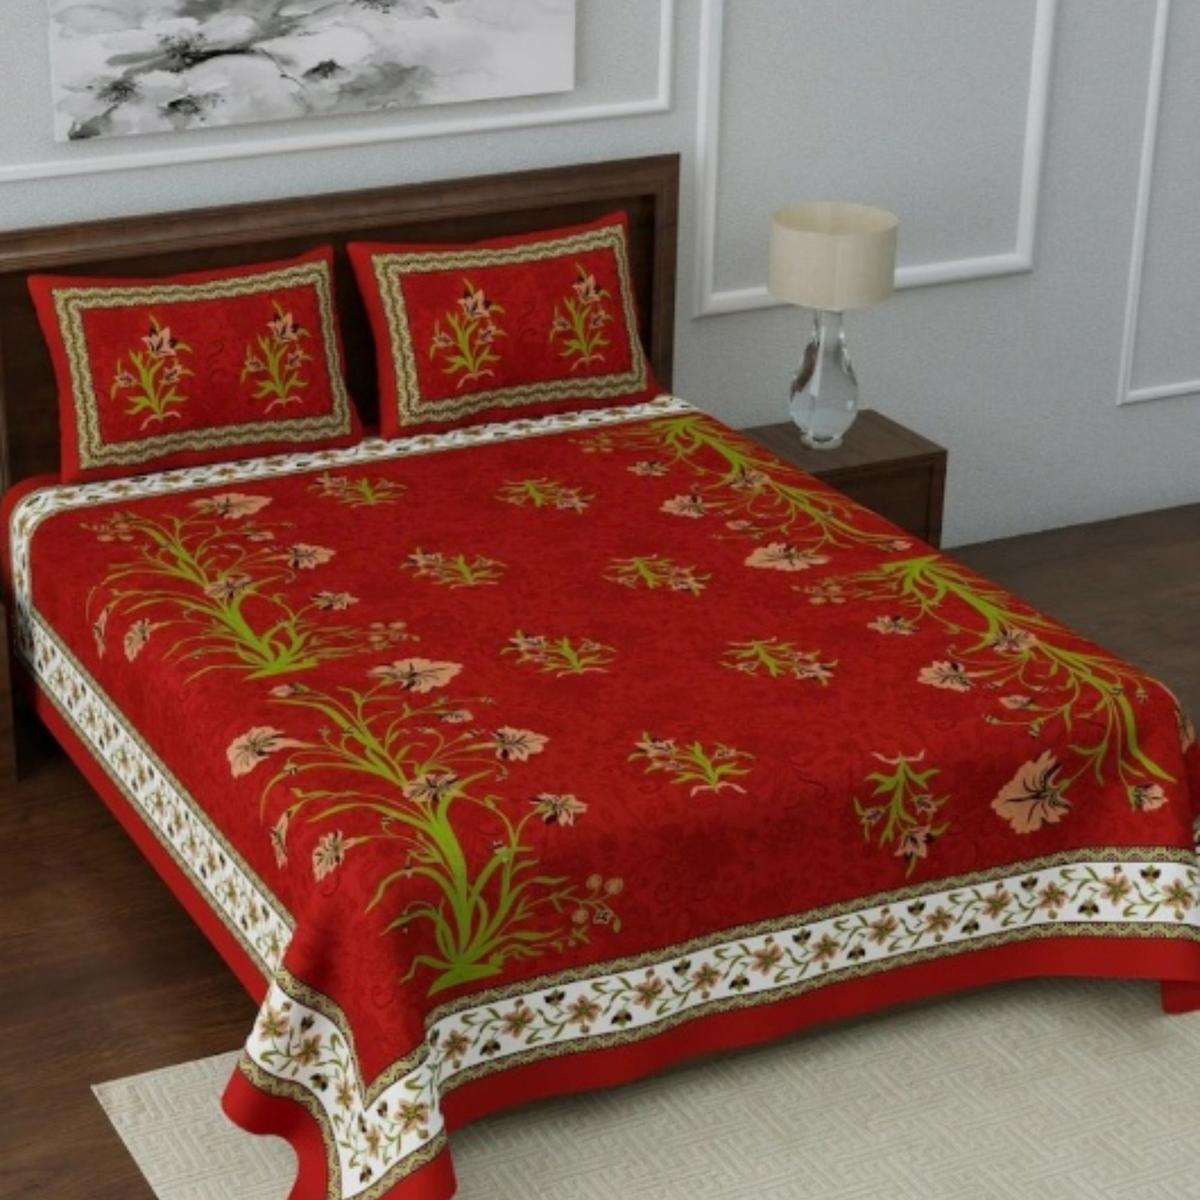 Diva Collection - Red Queen Double Size Cotton Bedsheet With 2 Pillow Cover